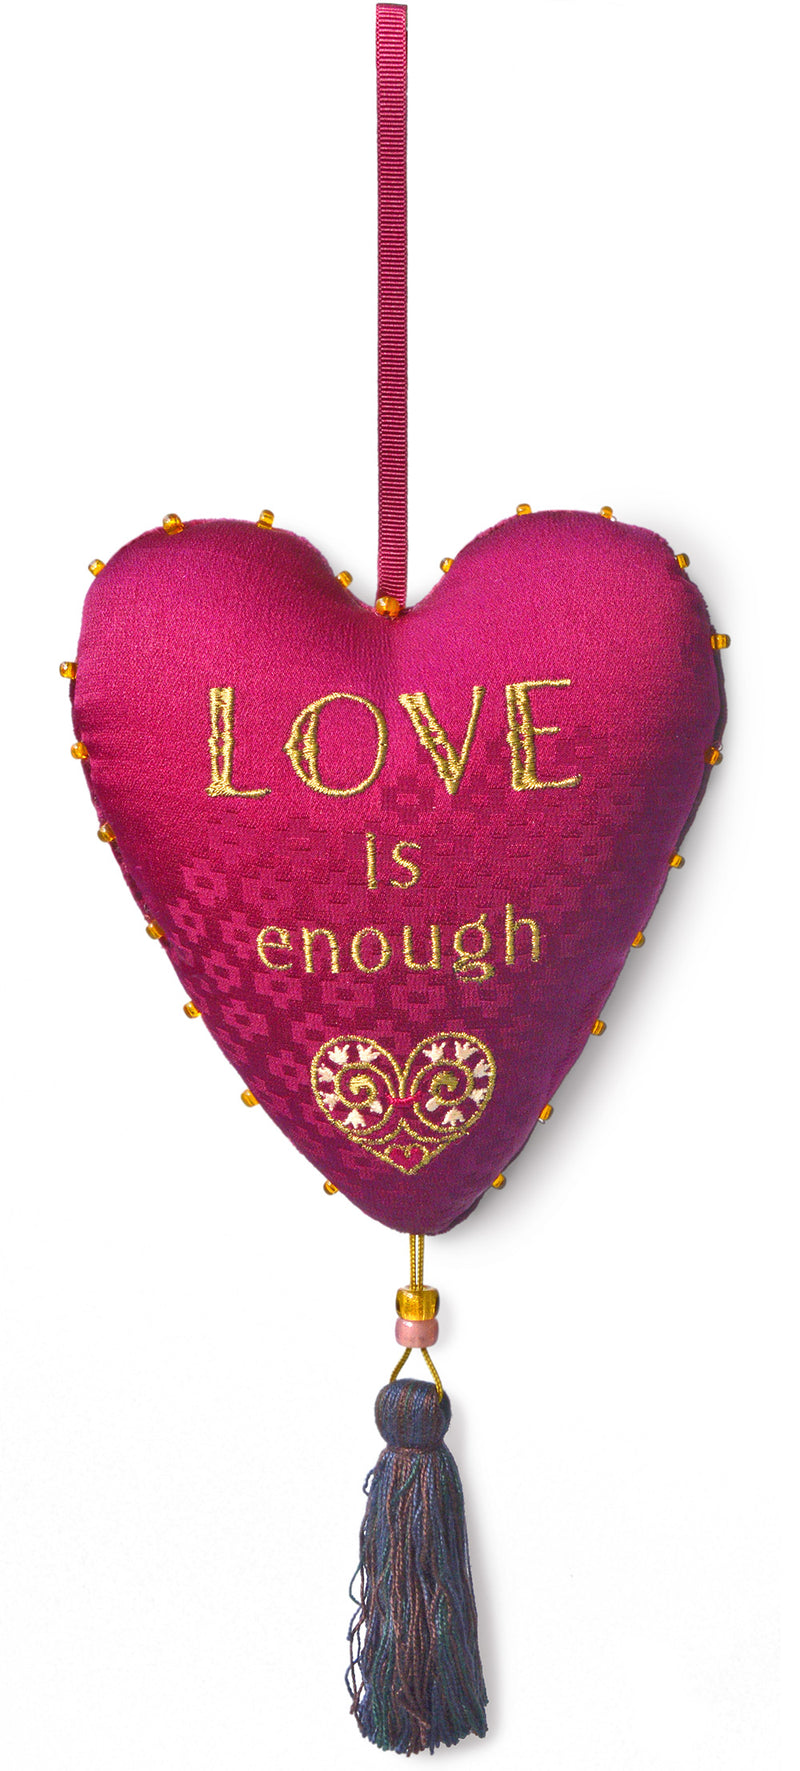 love is enough, love heart, stuffed heart, embroidered heart, charm, spellcraft, hanging charm